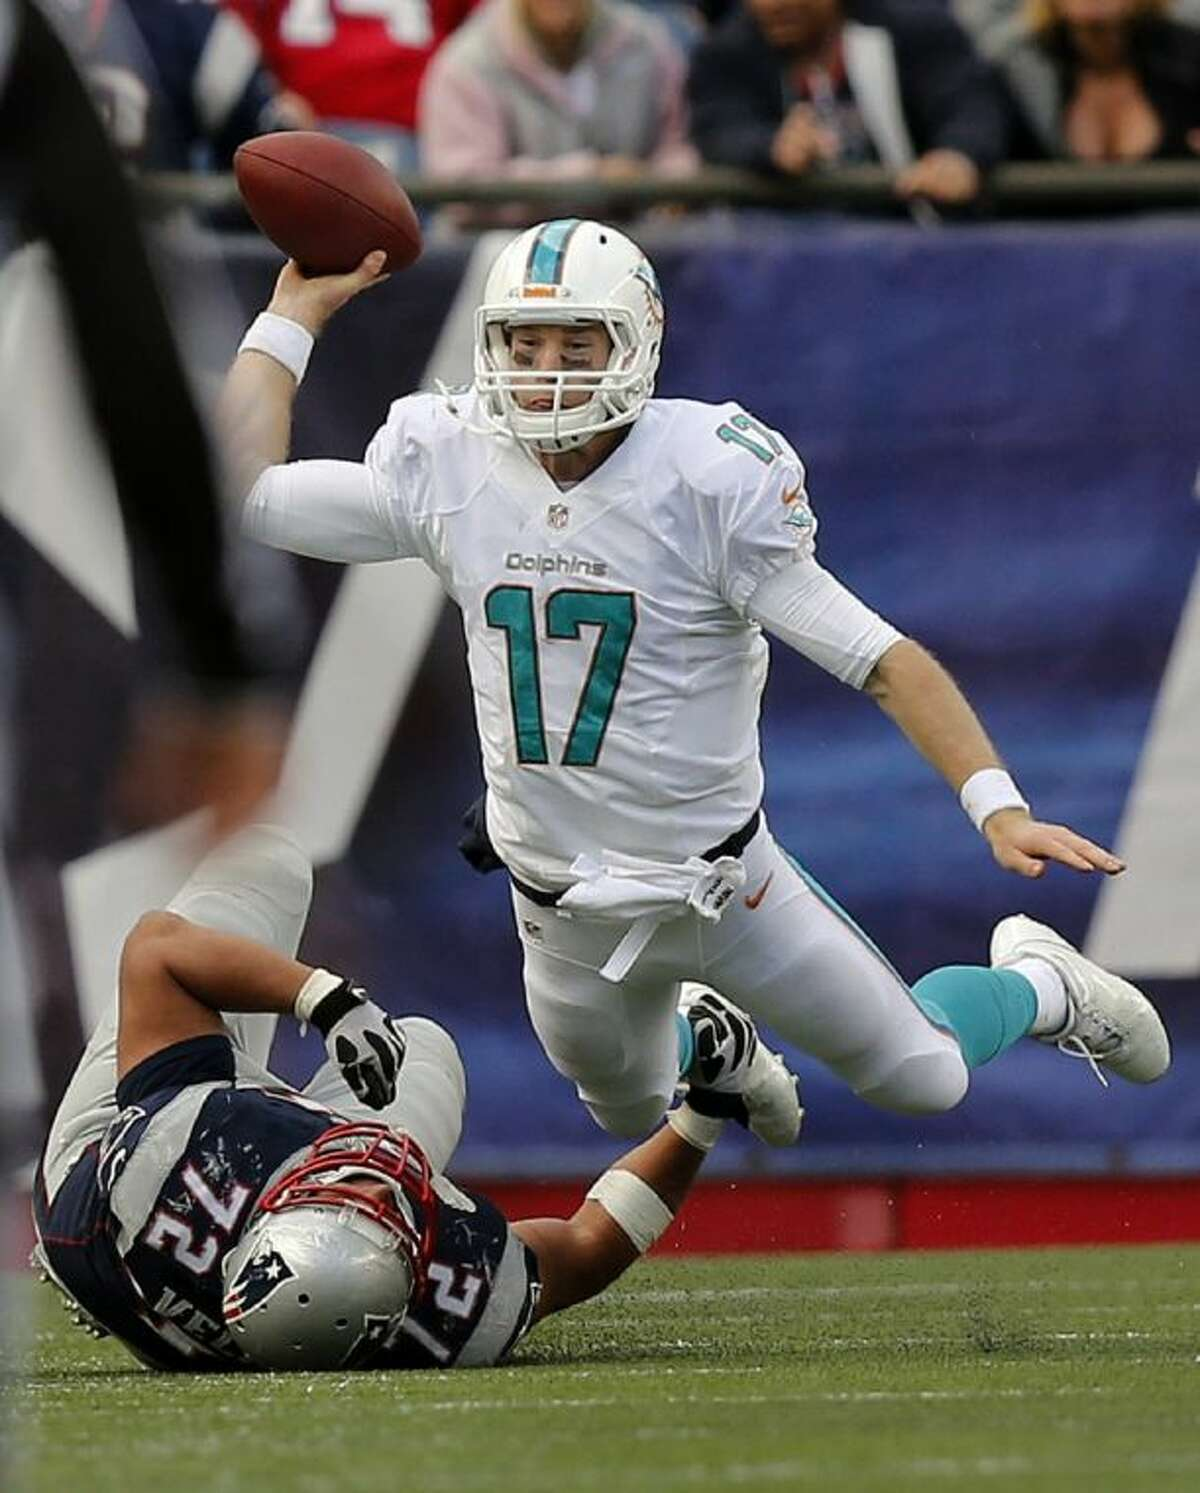 Miami Dolphins quarterback Ryan Tannehill gets rid of the ball as he is tackled by New England Patriots defensive tackle Joe Vellano on Sunday in Foxborough, Mass. The Patriots won 27-17.